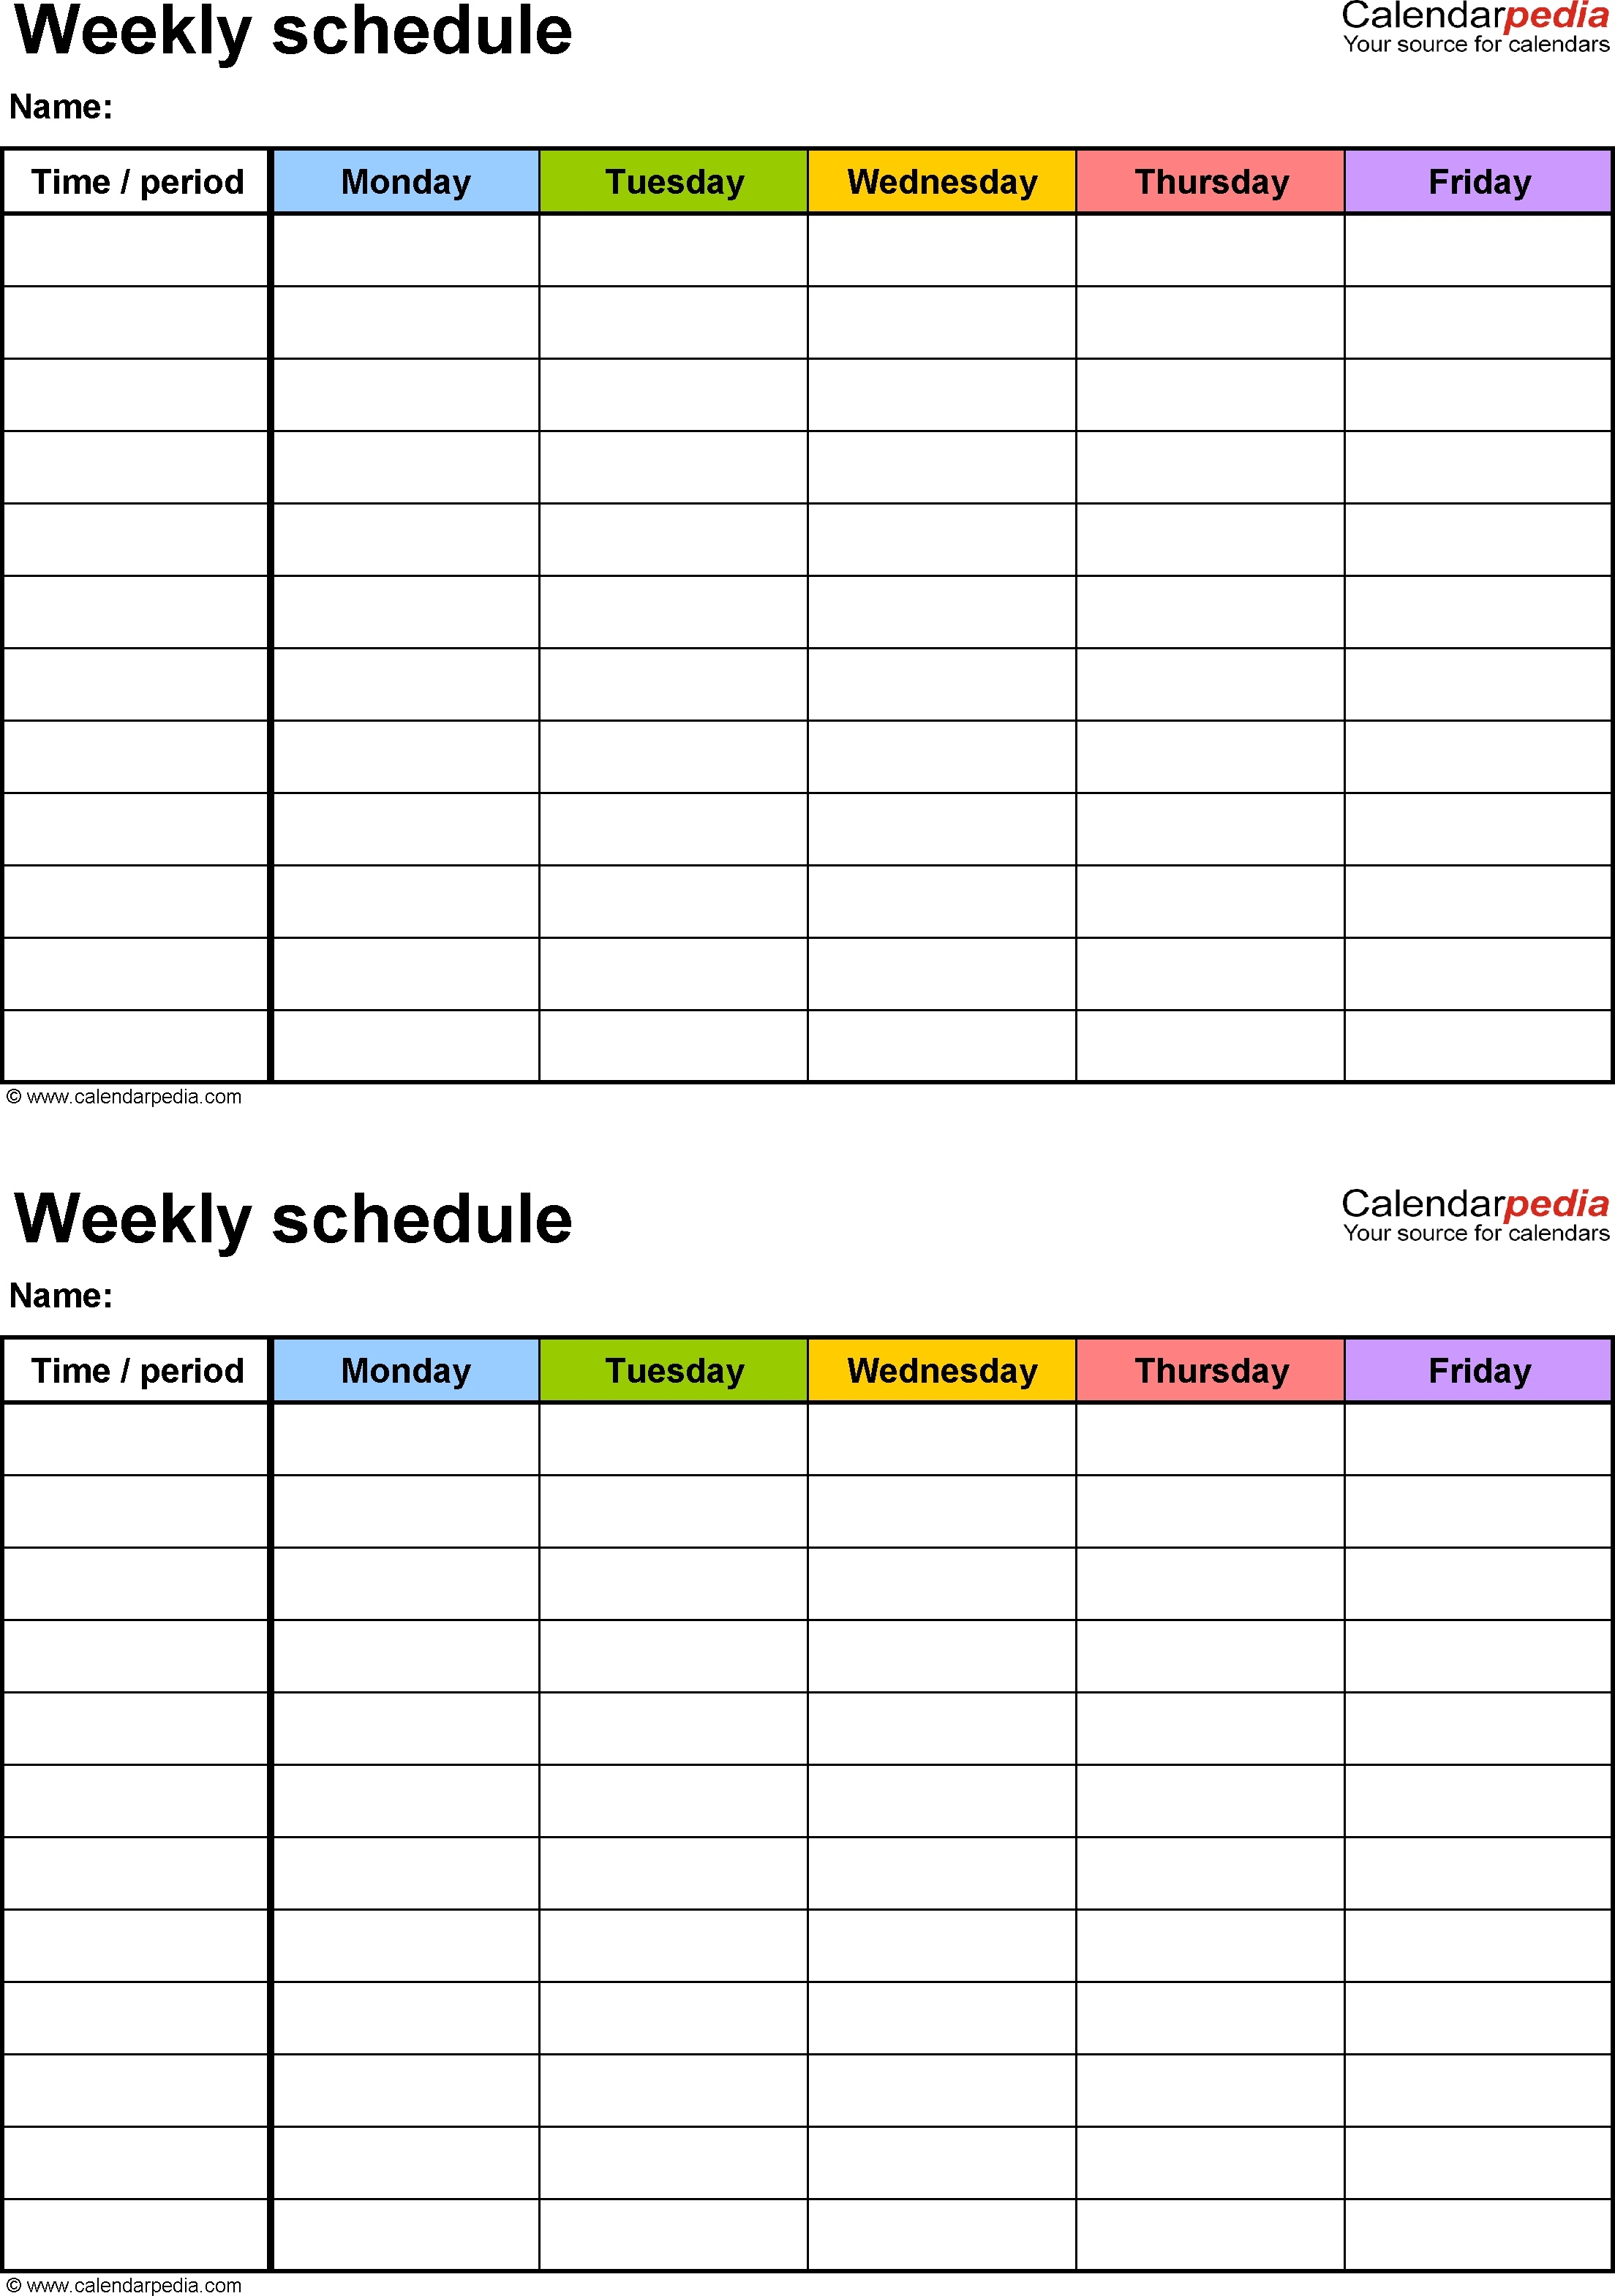 Weekly Schedule Template For Pdf Version 3 2 Schedules On One Page  One Week Calendar Template Printable